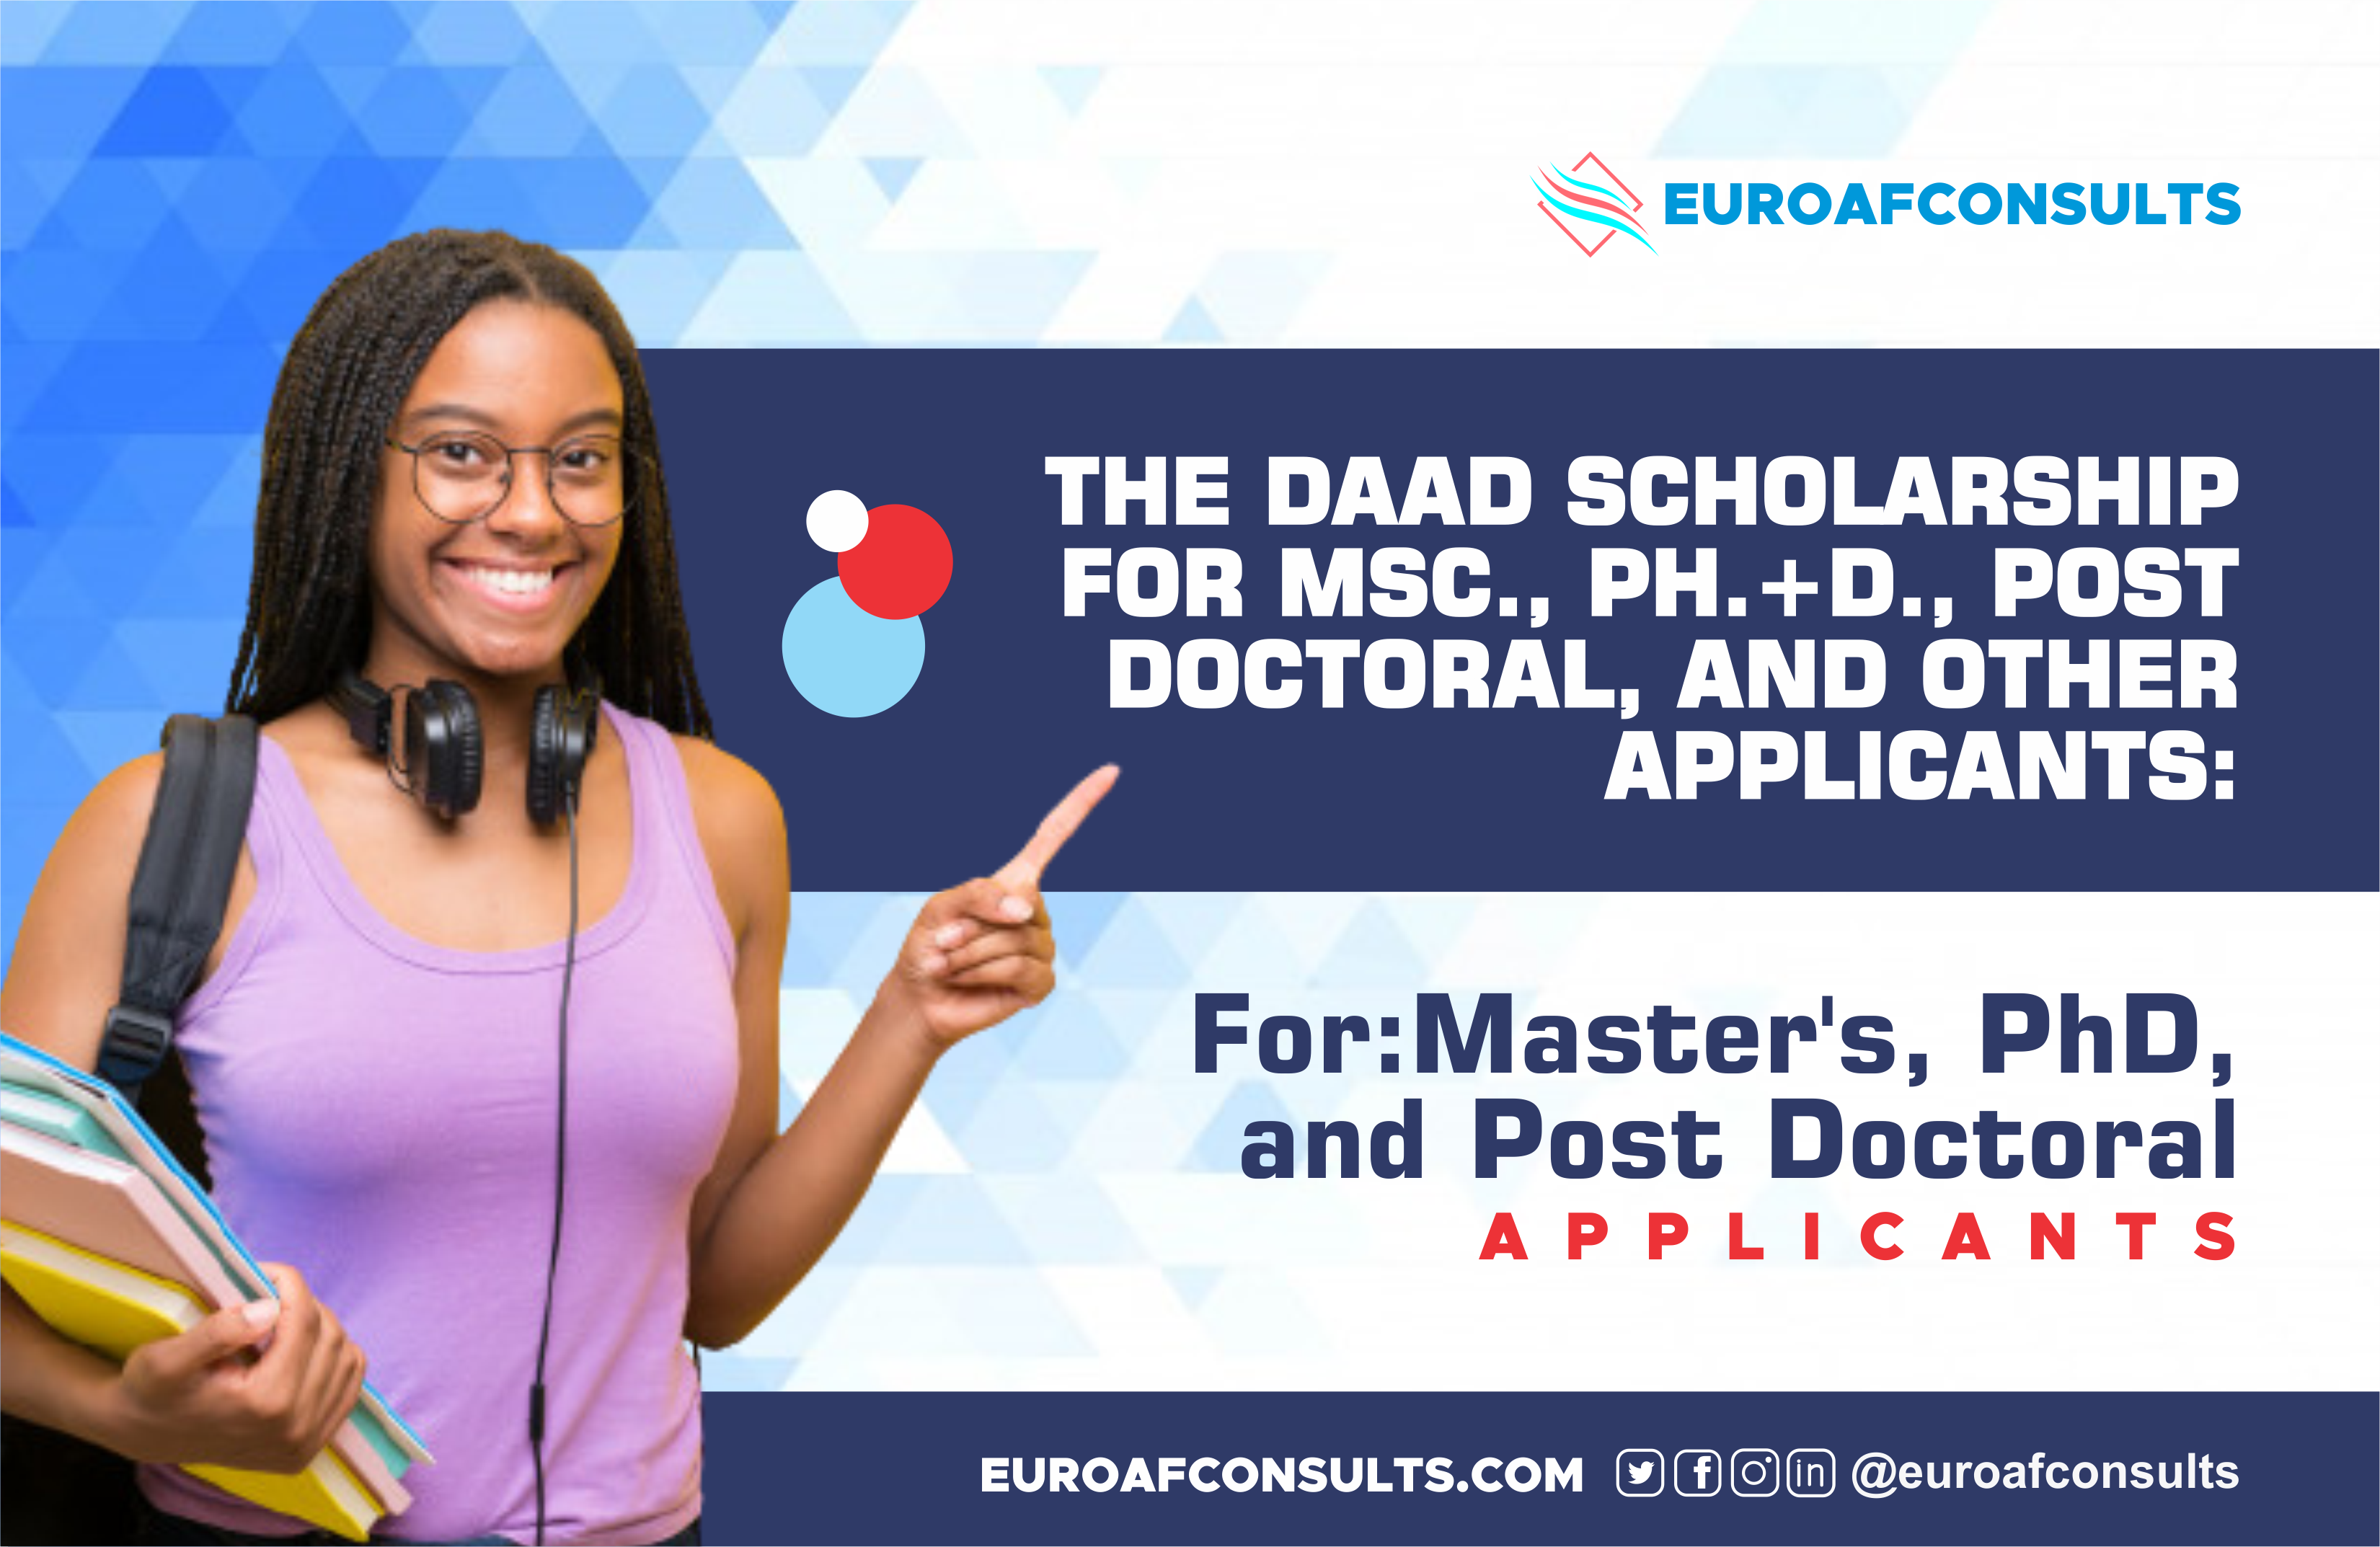 You are currently viewing Application Scholarship for DAAD Master Science, PhD., and Post doctorate